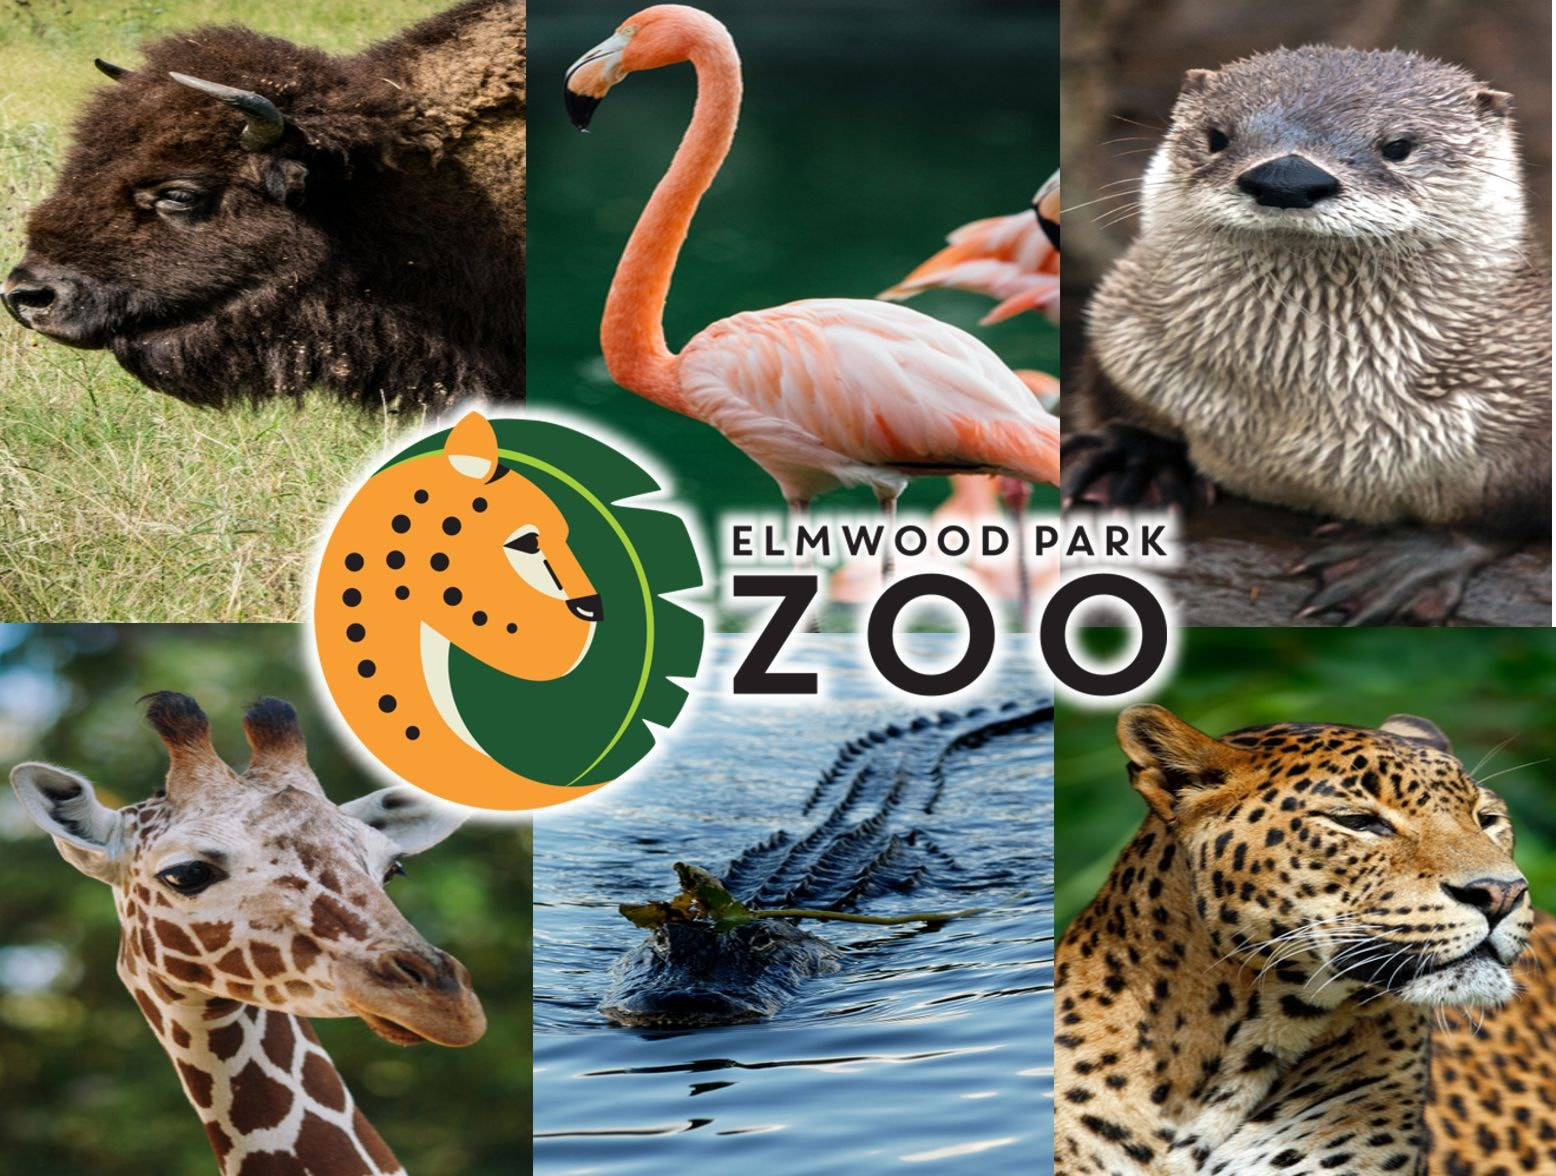 Four Tickets to Elmwood Park Zoo for $36! - 92 5 XTU